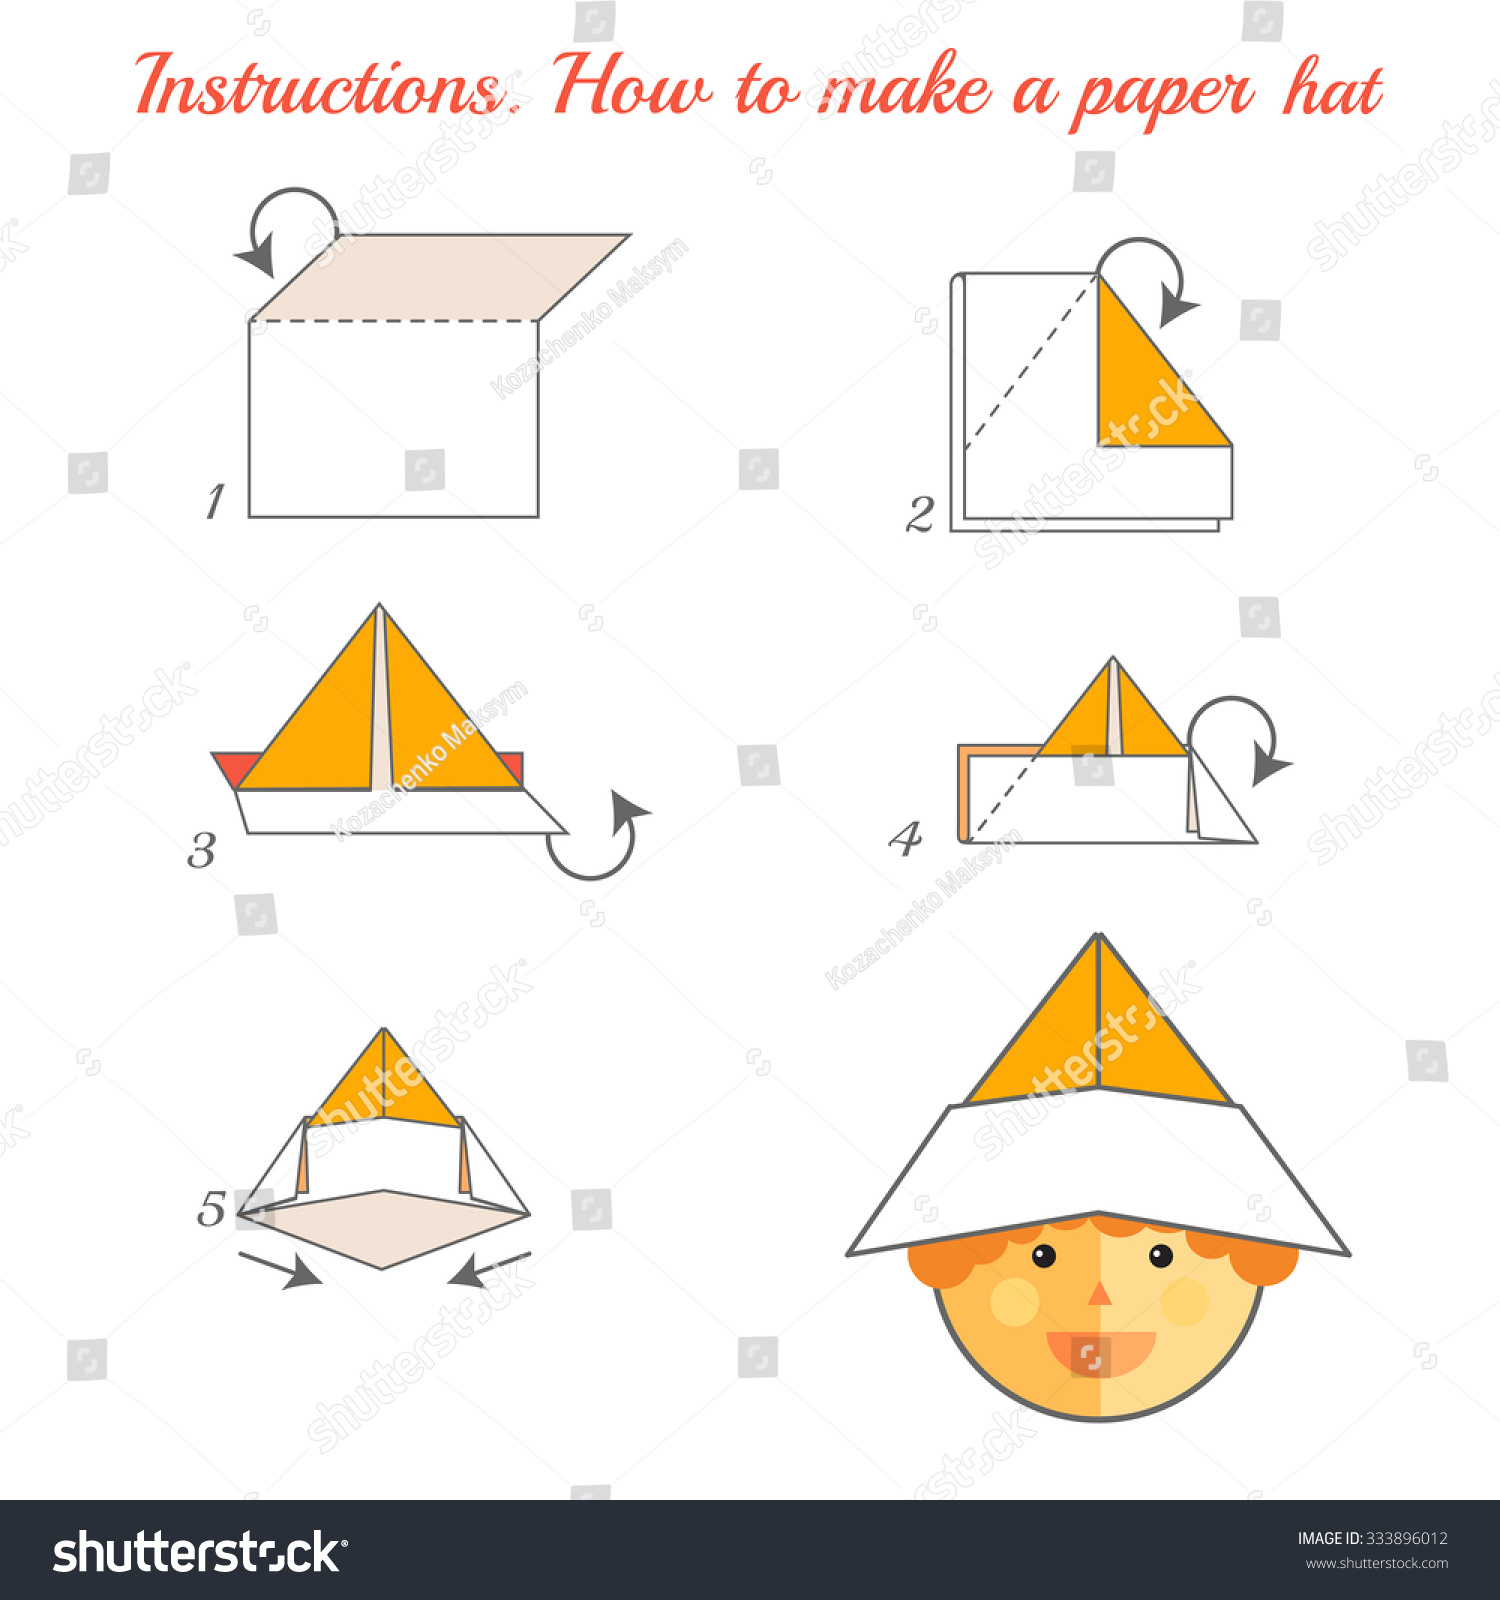 how to make game instructions